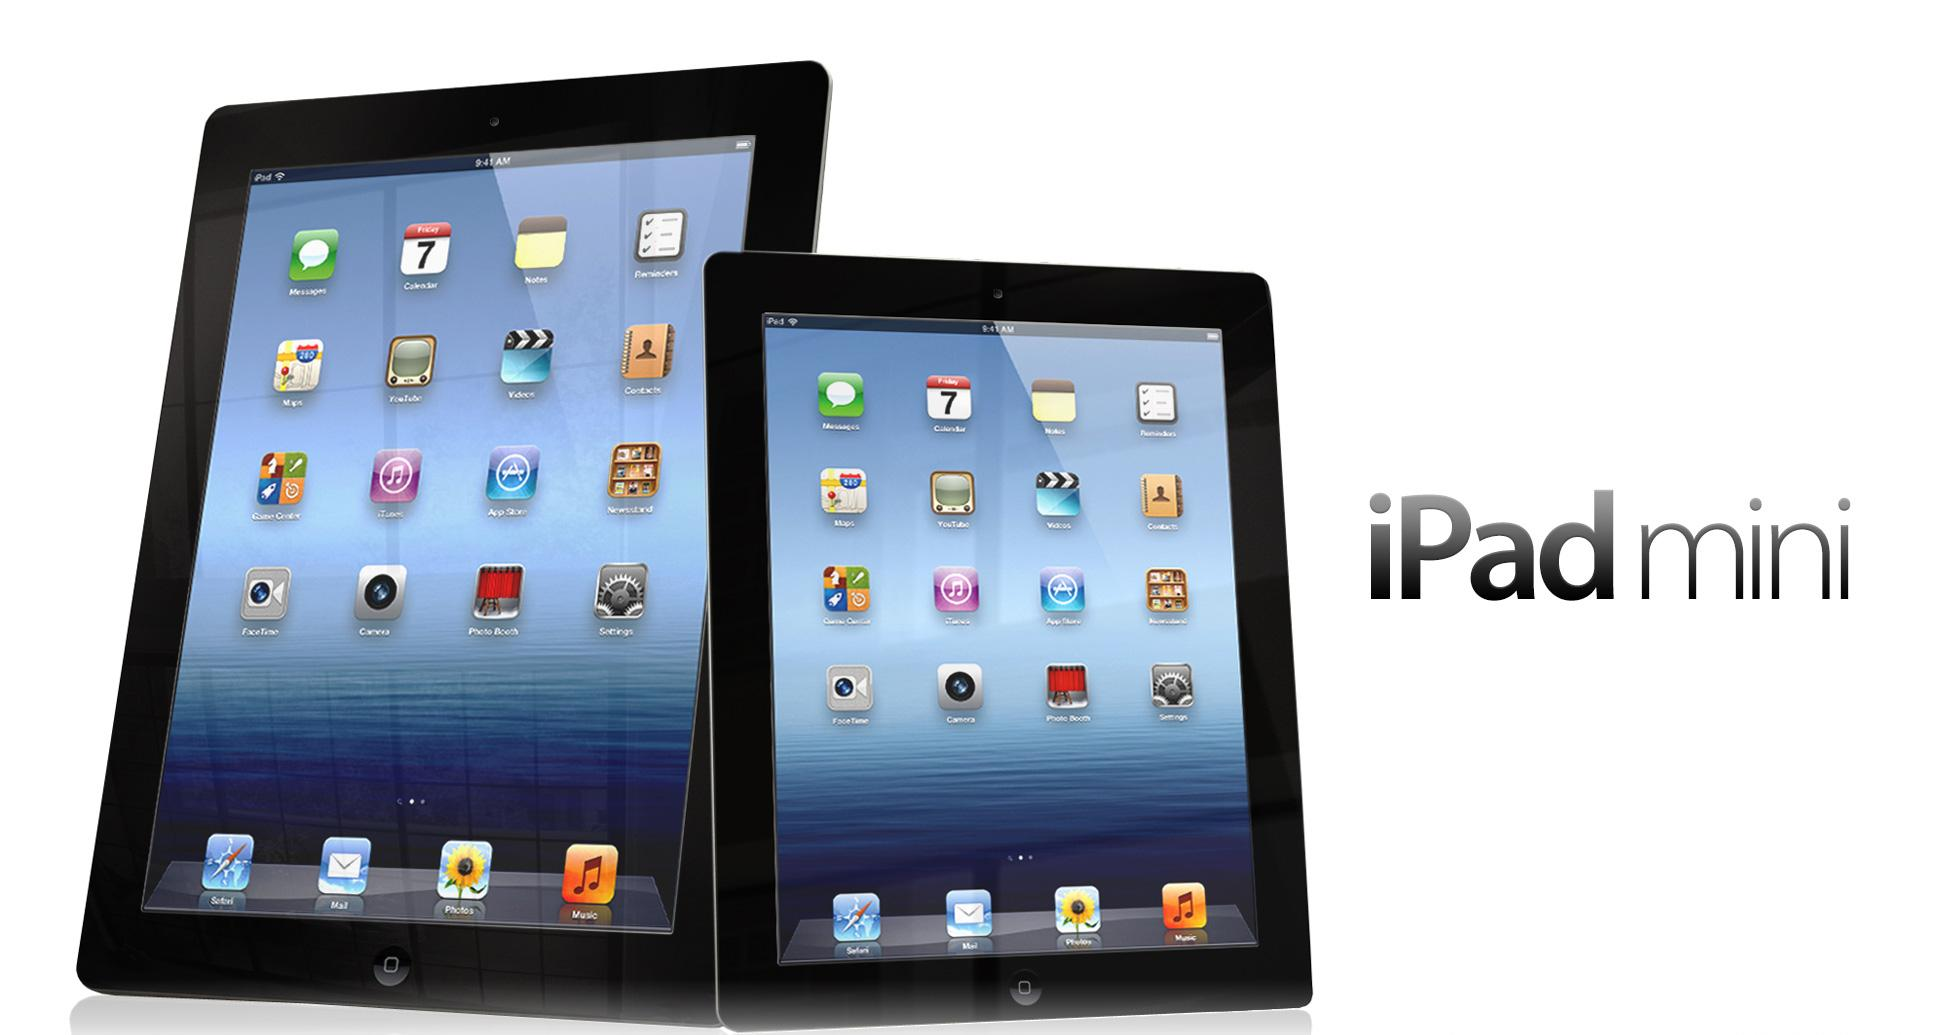 iPad or Android tablet? Find the right gadget for you by comparison